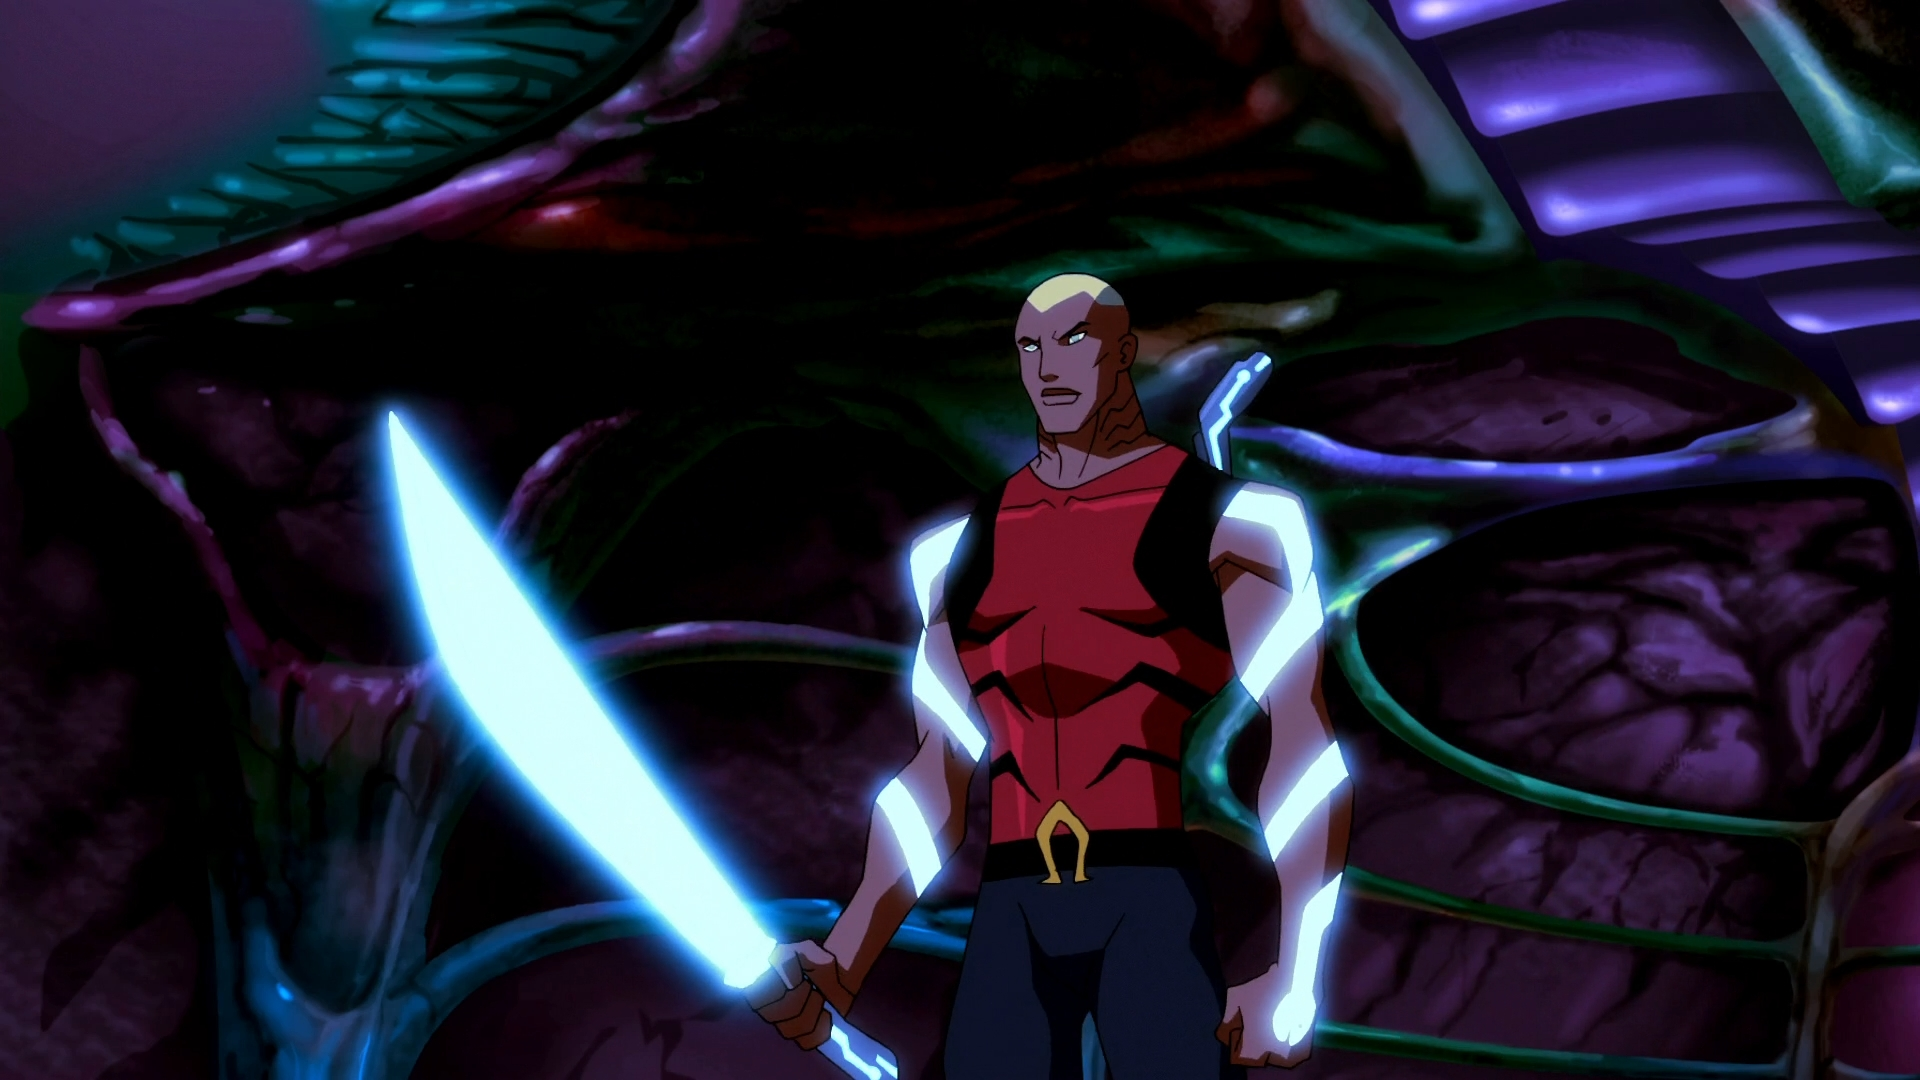 aqualad computer wallpapers desktop backgrounds